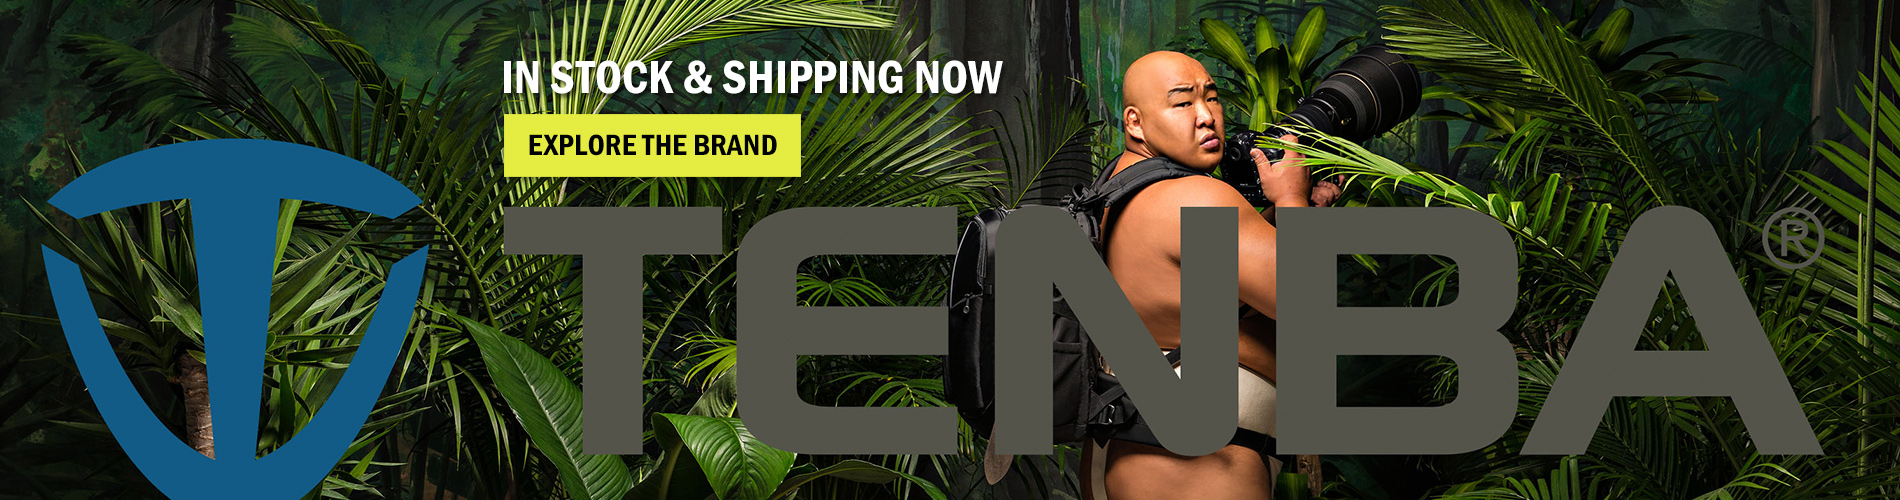 Introducing Tenba, In stock & shipping now! Explore the brand →